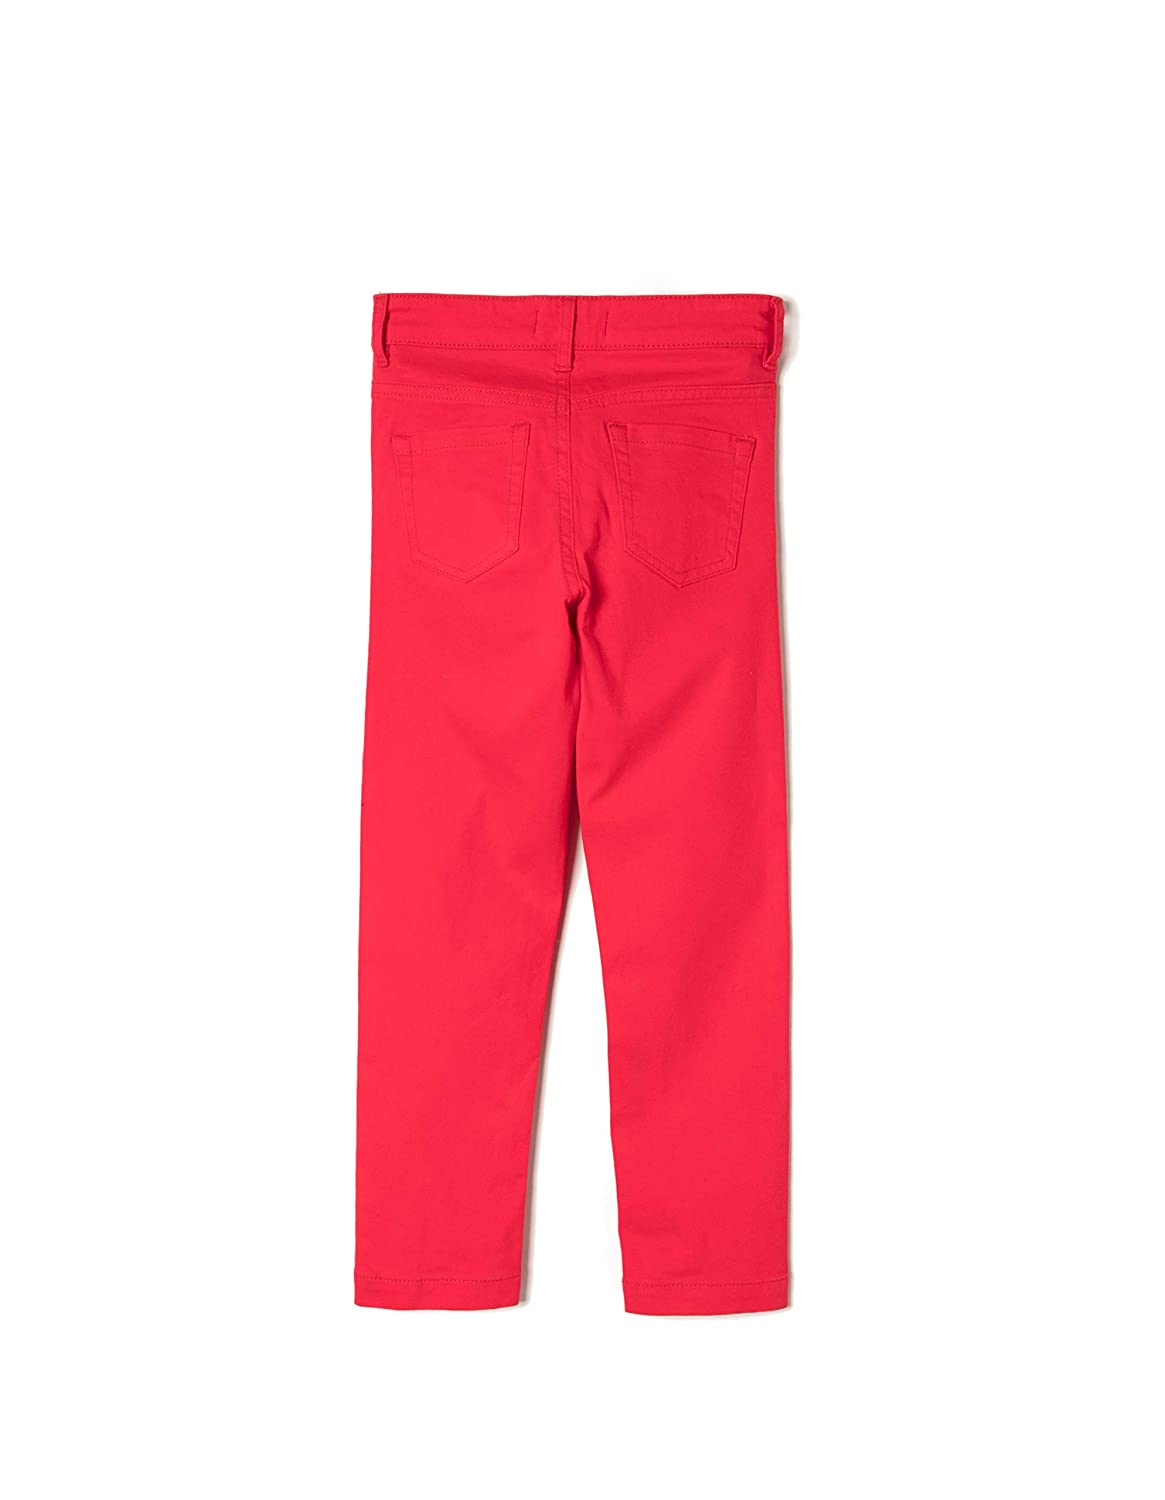 ZIPPY Girls Trouser